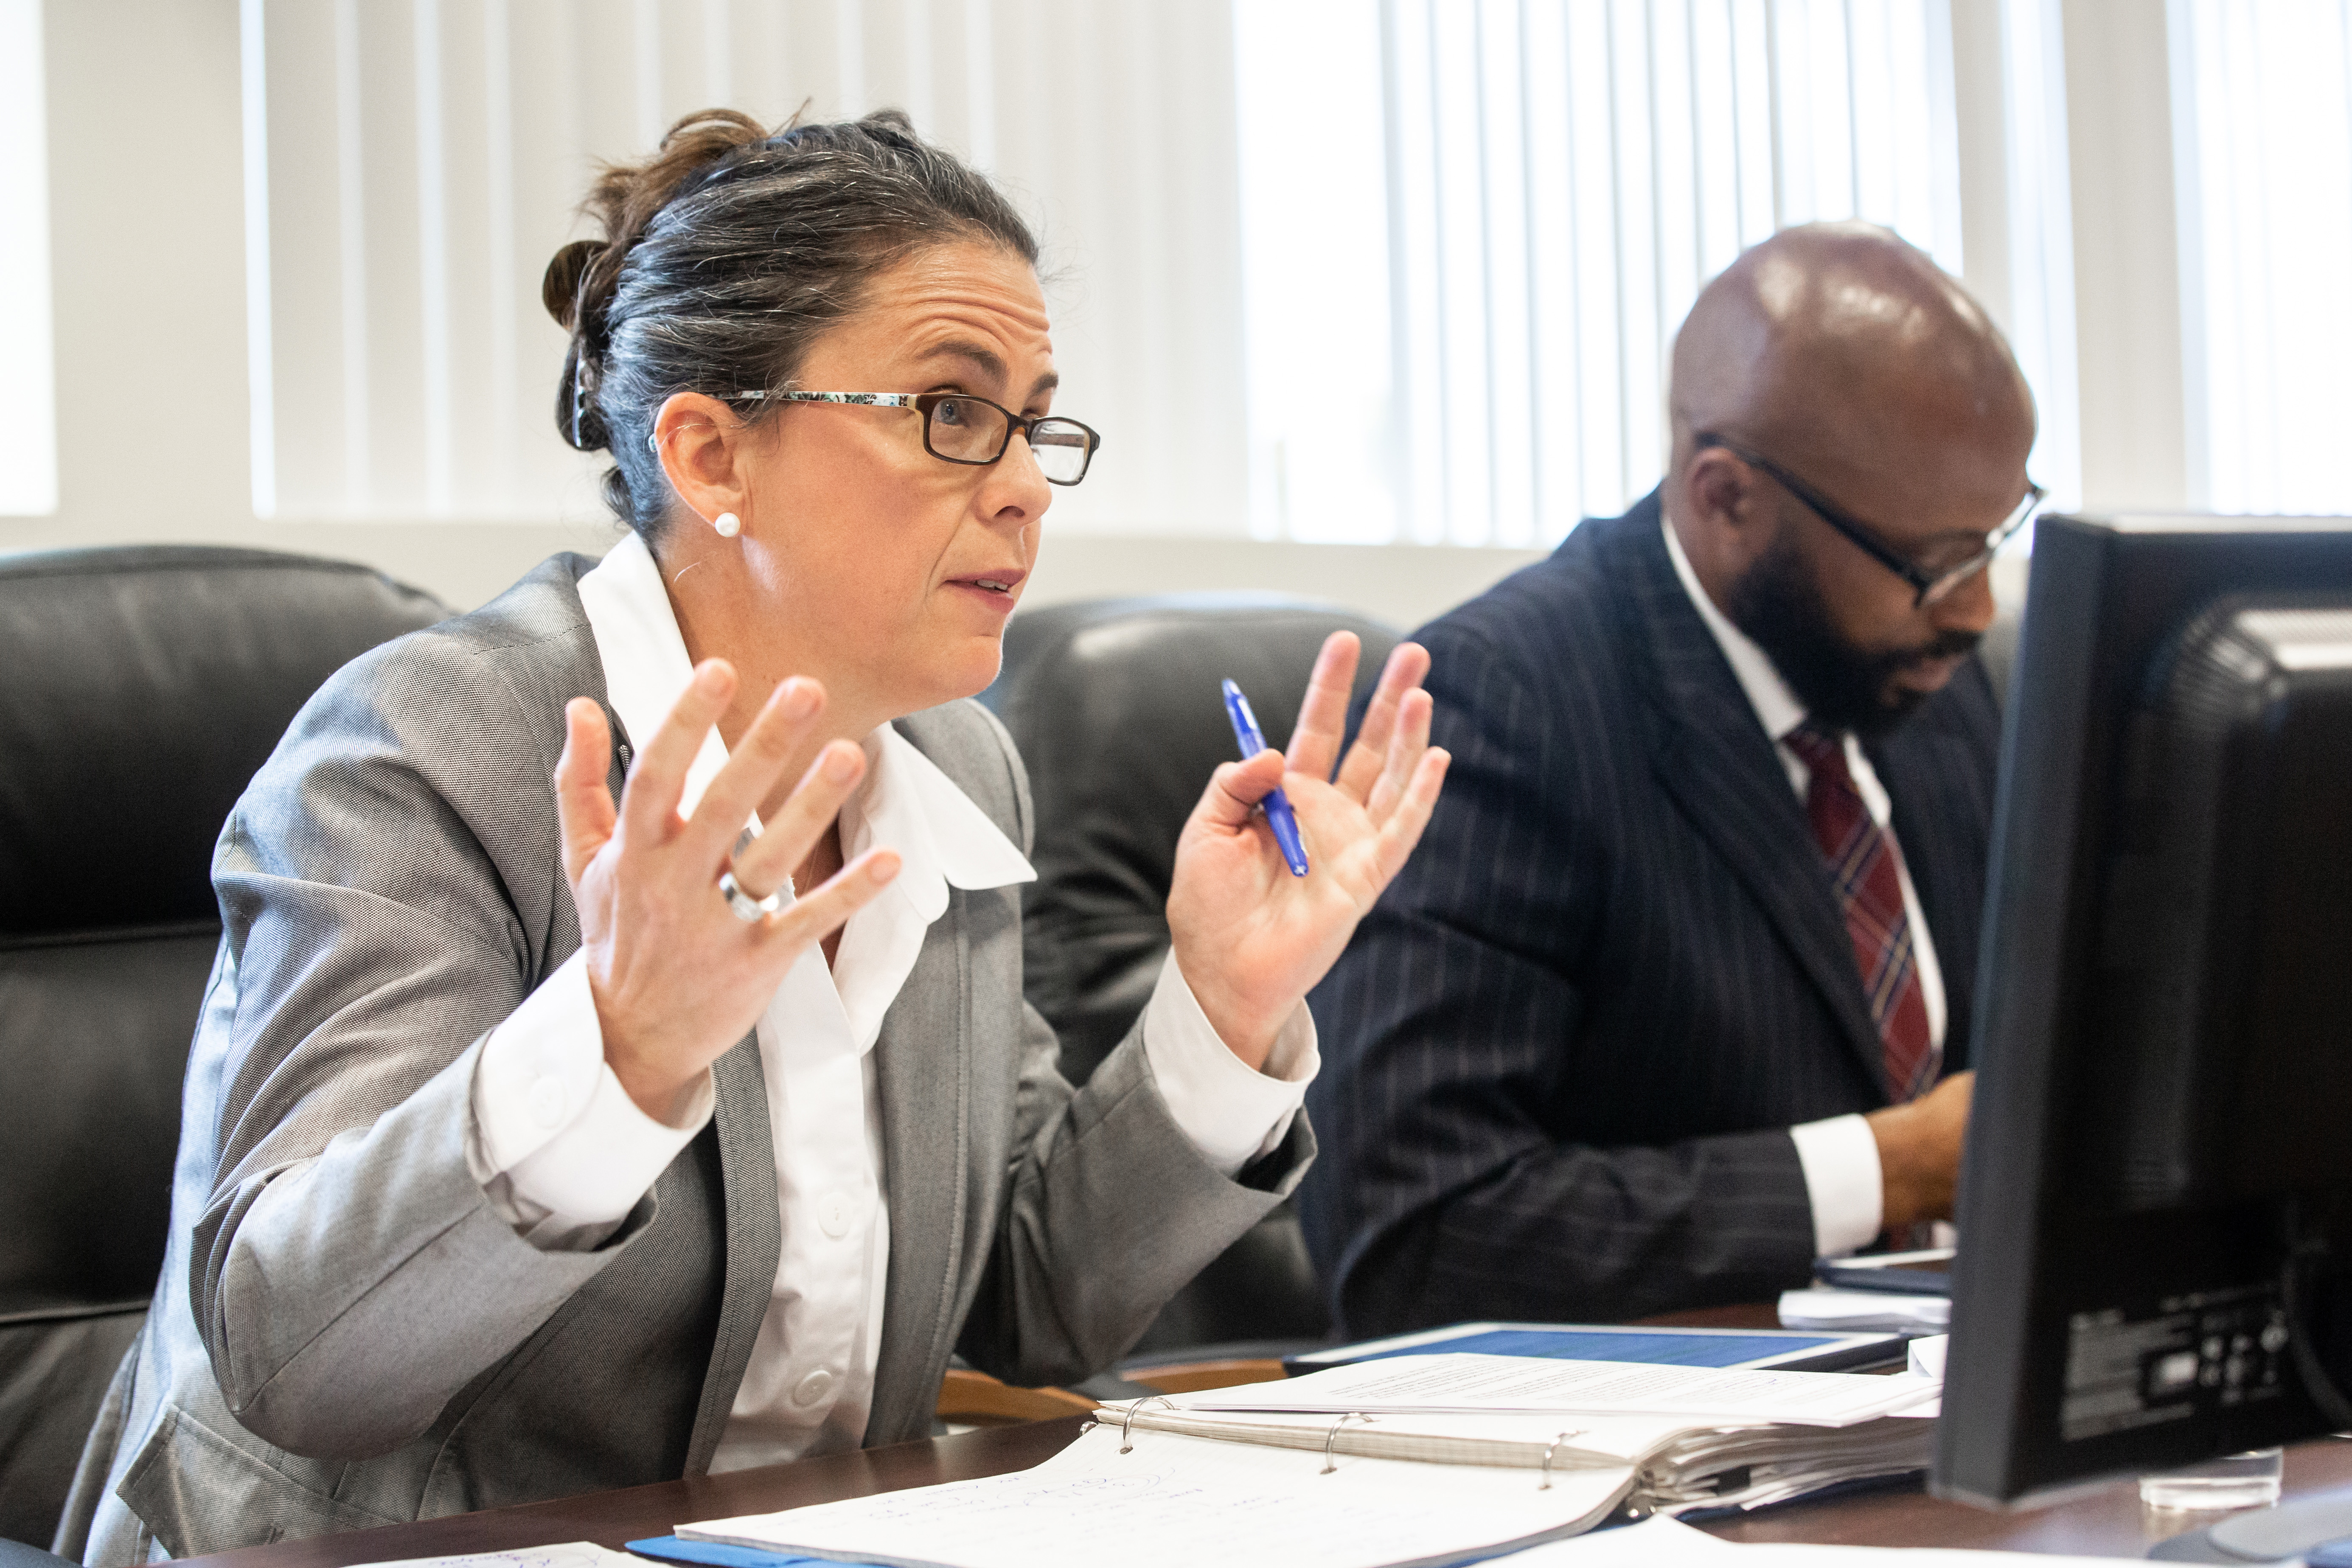 At the parole board, justice is delayed and denied - The